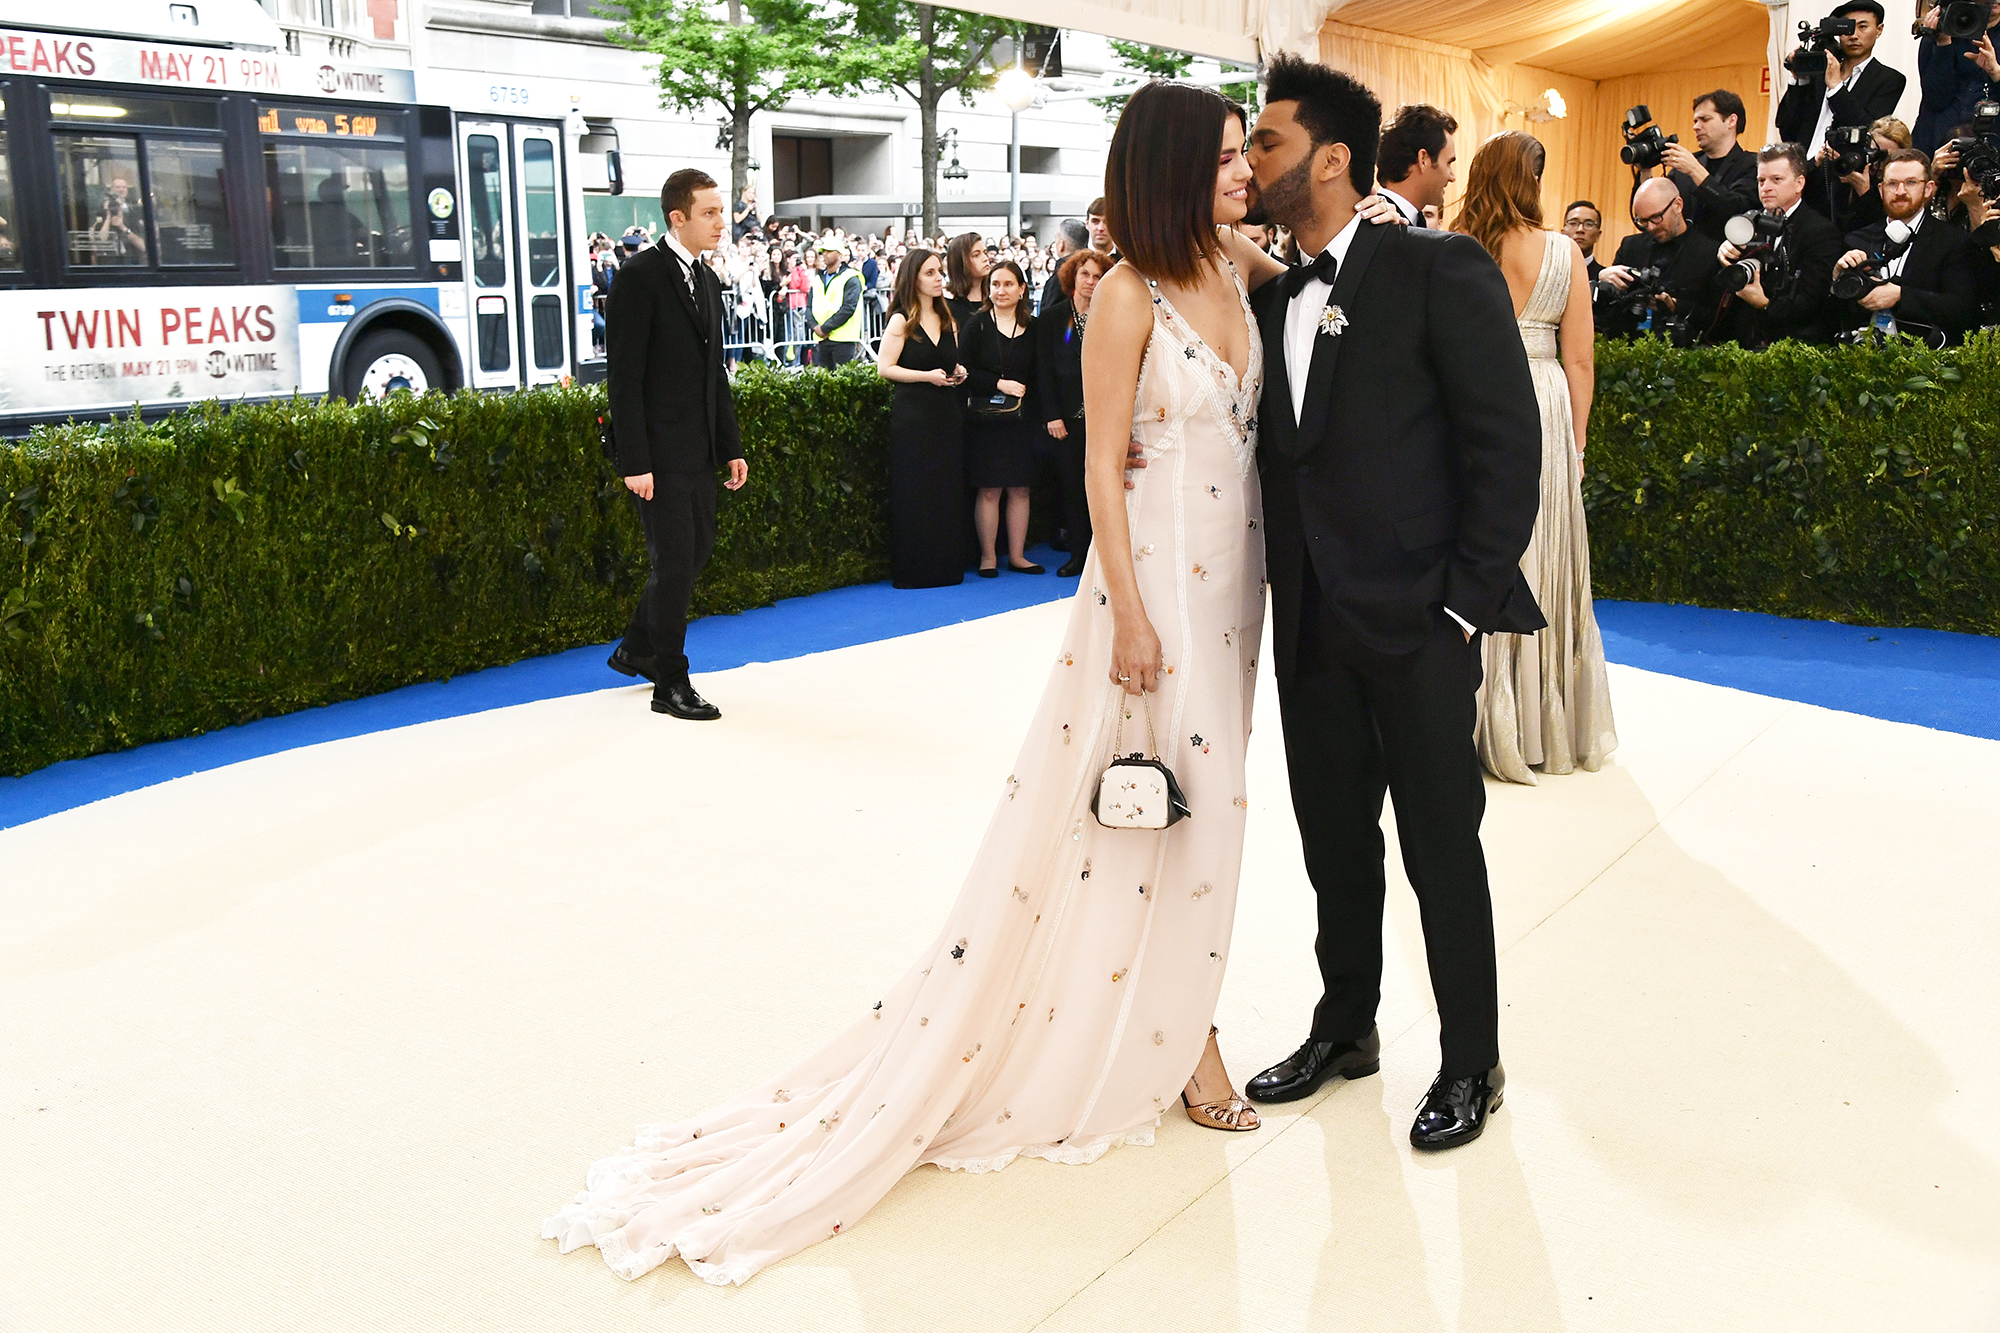 Selena Gomez and The Weeknd attend the  Rei Kawakubo/Comme des Garcons: Art Of The In-Between  Costume Institute Gala at Metropolitan Museum of Art in New York City, on May 1, 2017.